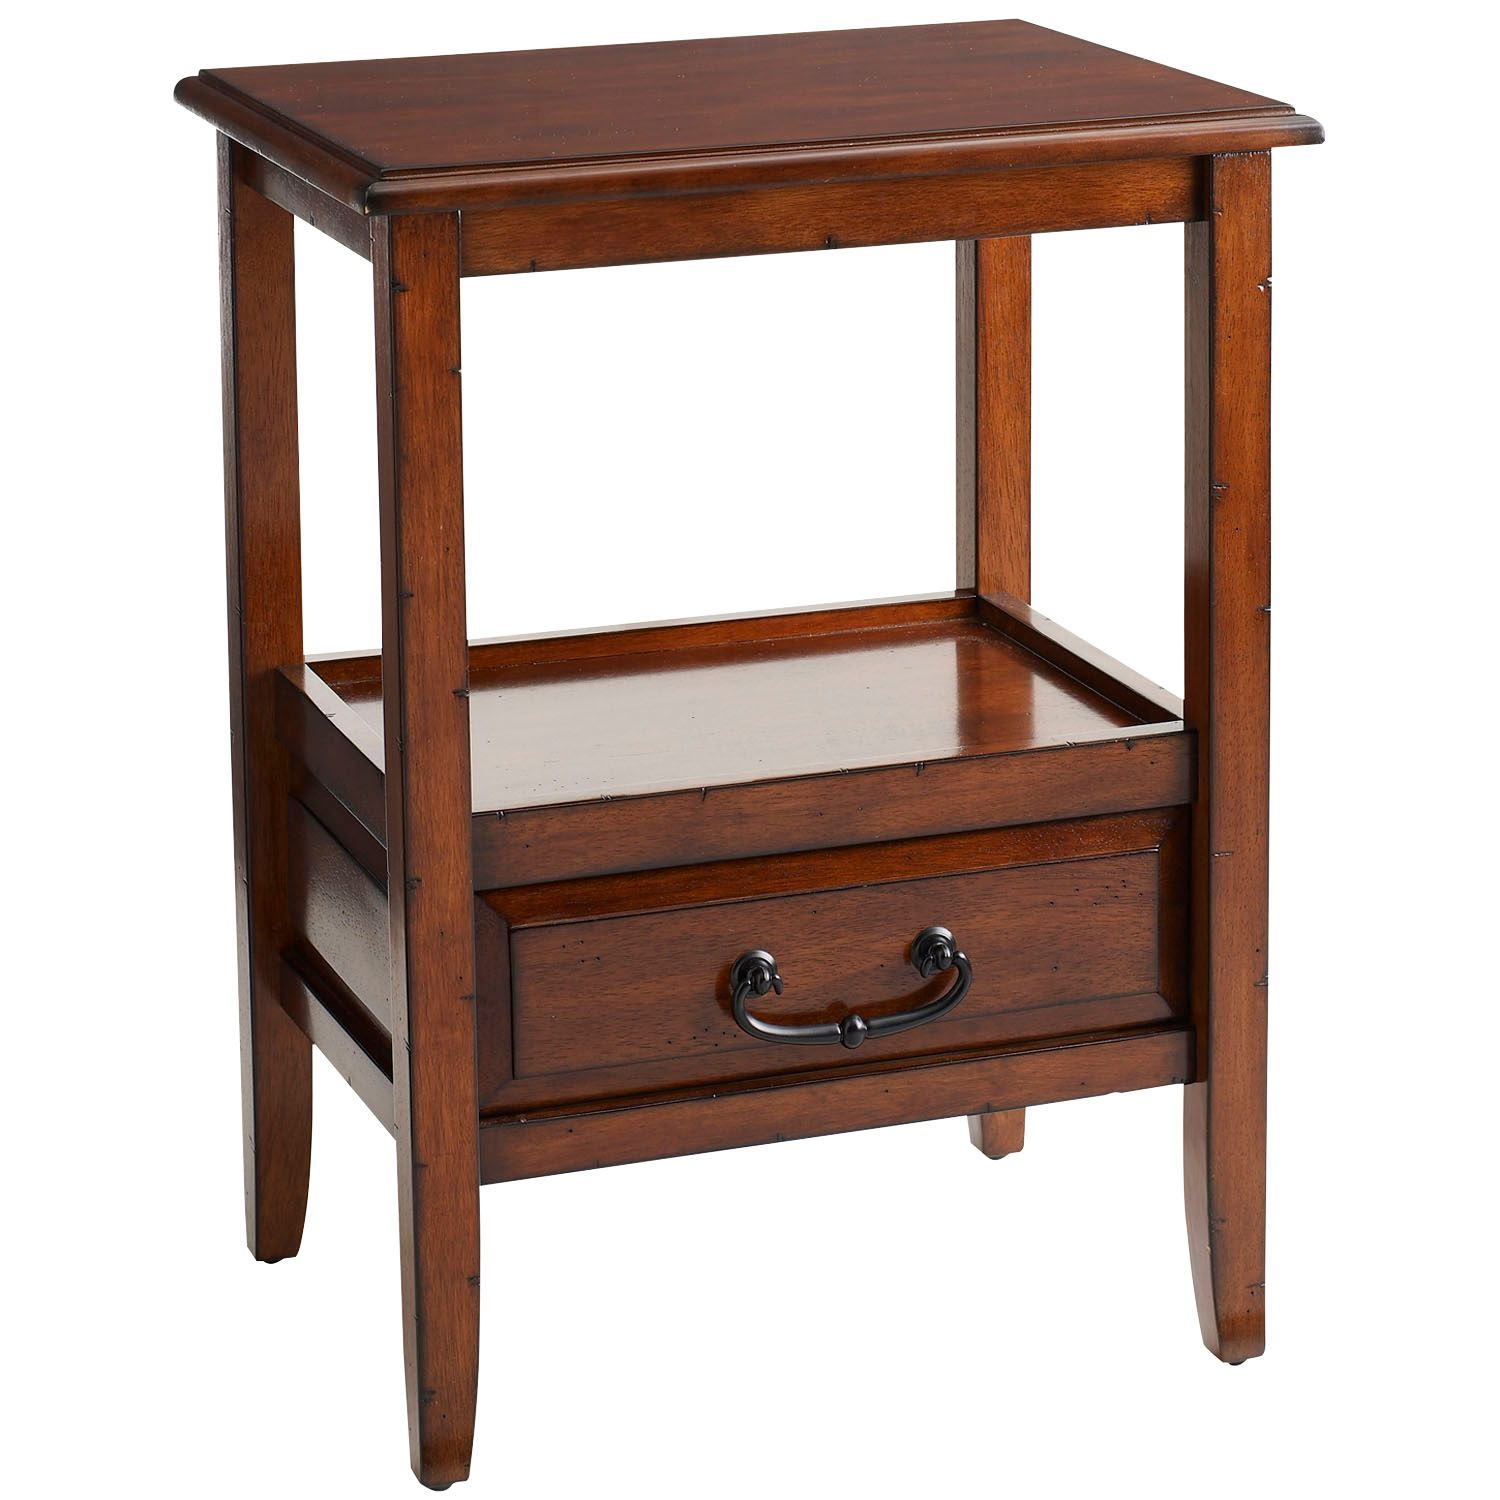 anywhere tuscan brown end table with pull handles pier imports accent tables collection barn door designs chests and consoles small metal garden front hall wooden bar threshold